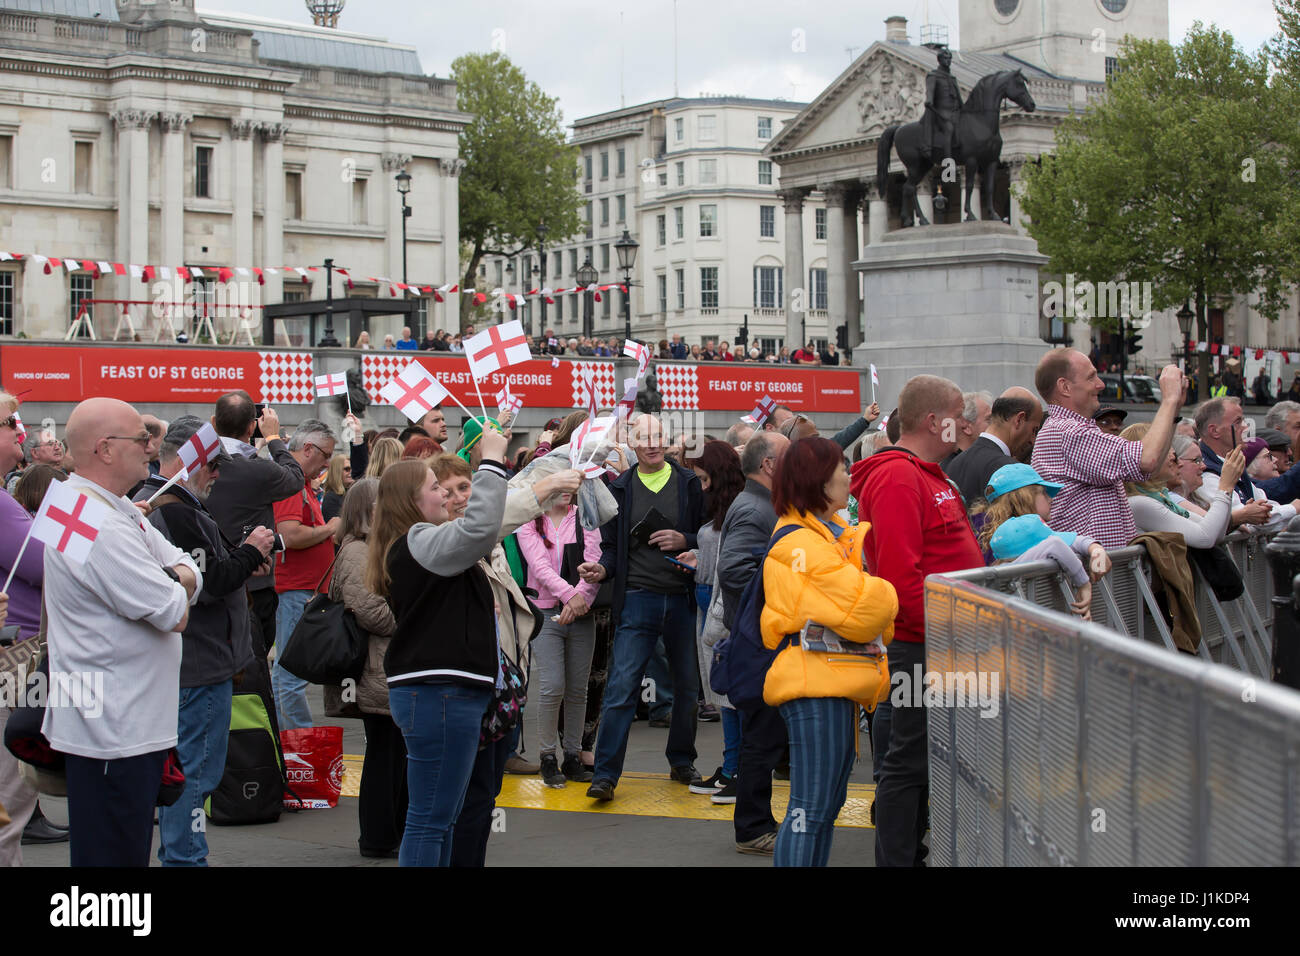 Trafalgar Square, UK. 22nd Apr, 2017. The Annual Feast of St George celebrations took place in Trafalgar Square - Stock Image